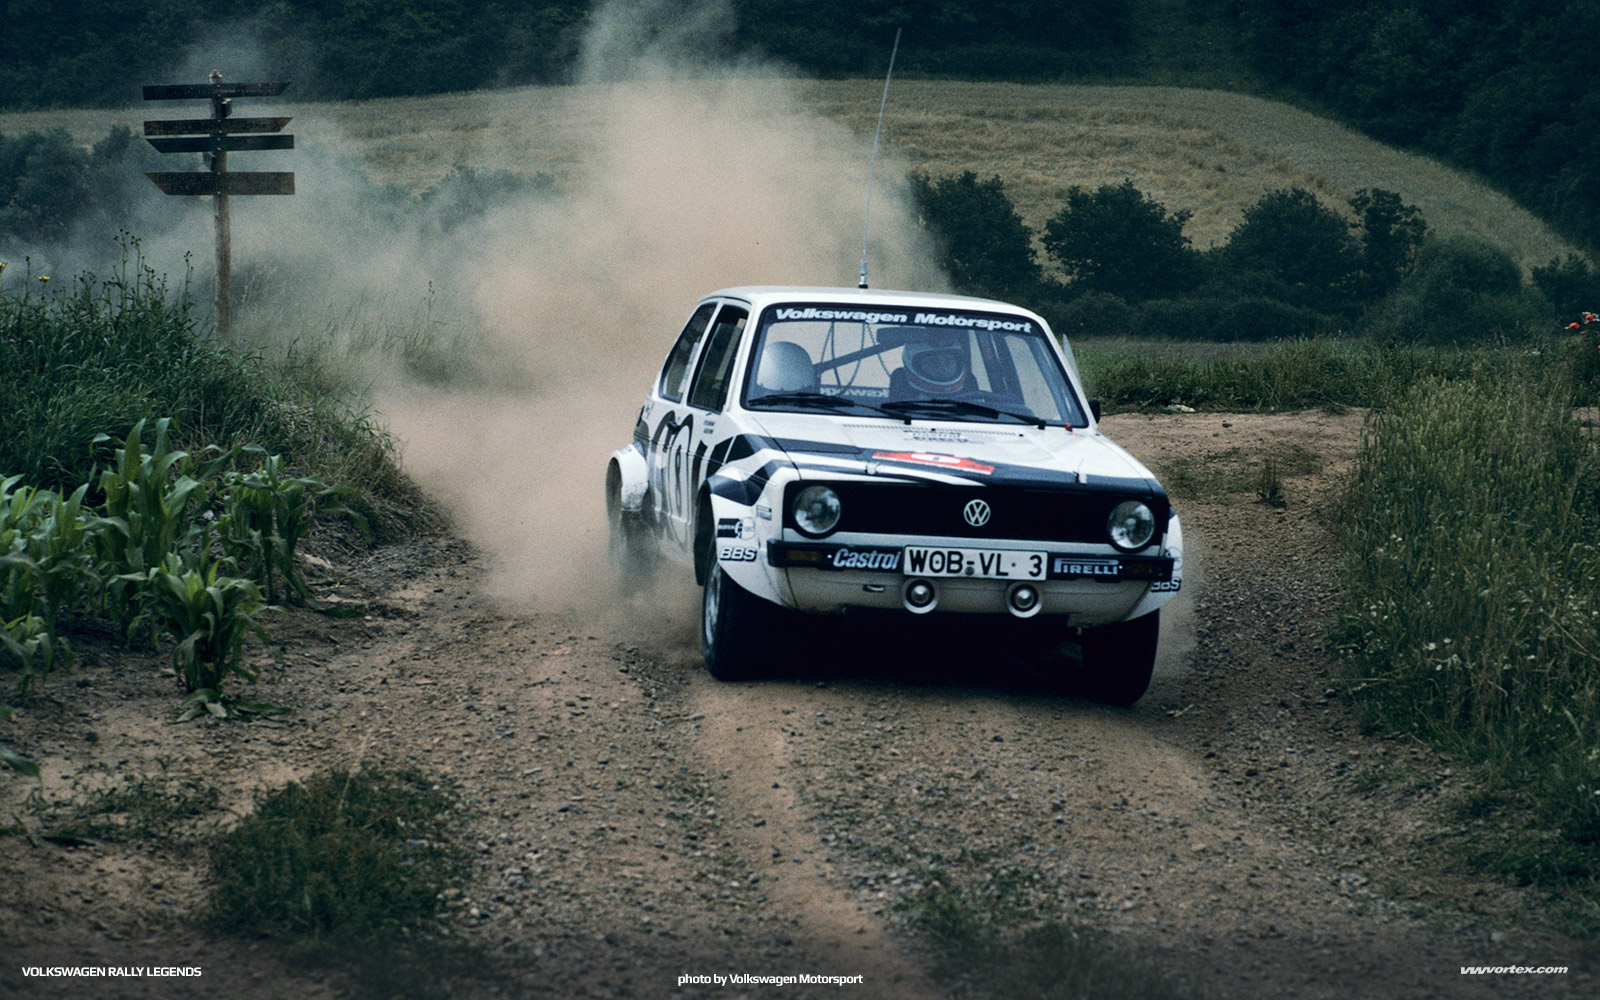 volkswagen-rally-legends-386